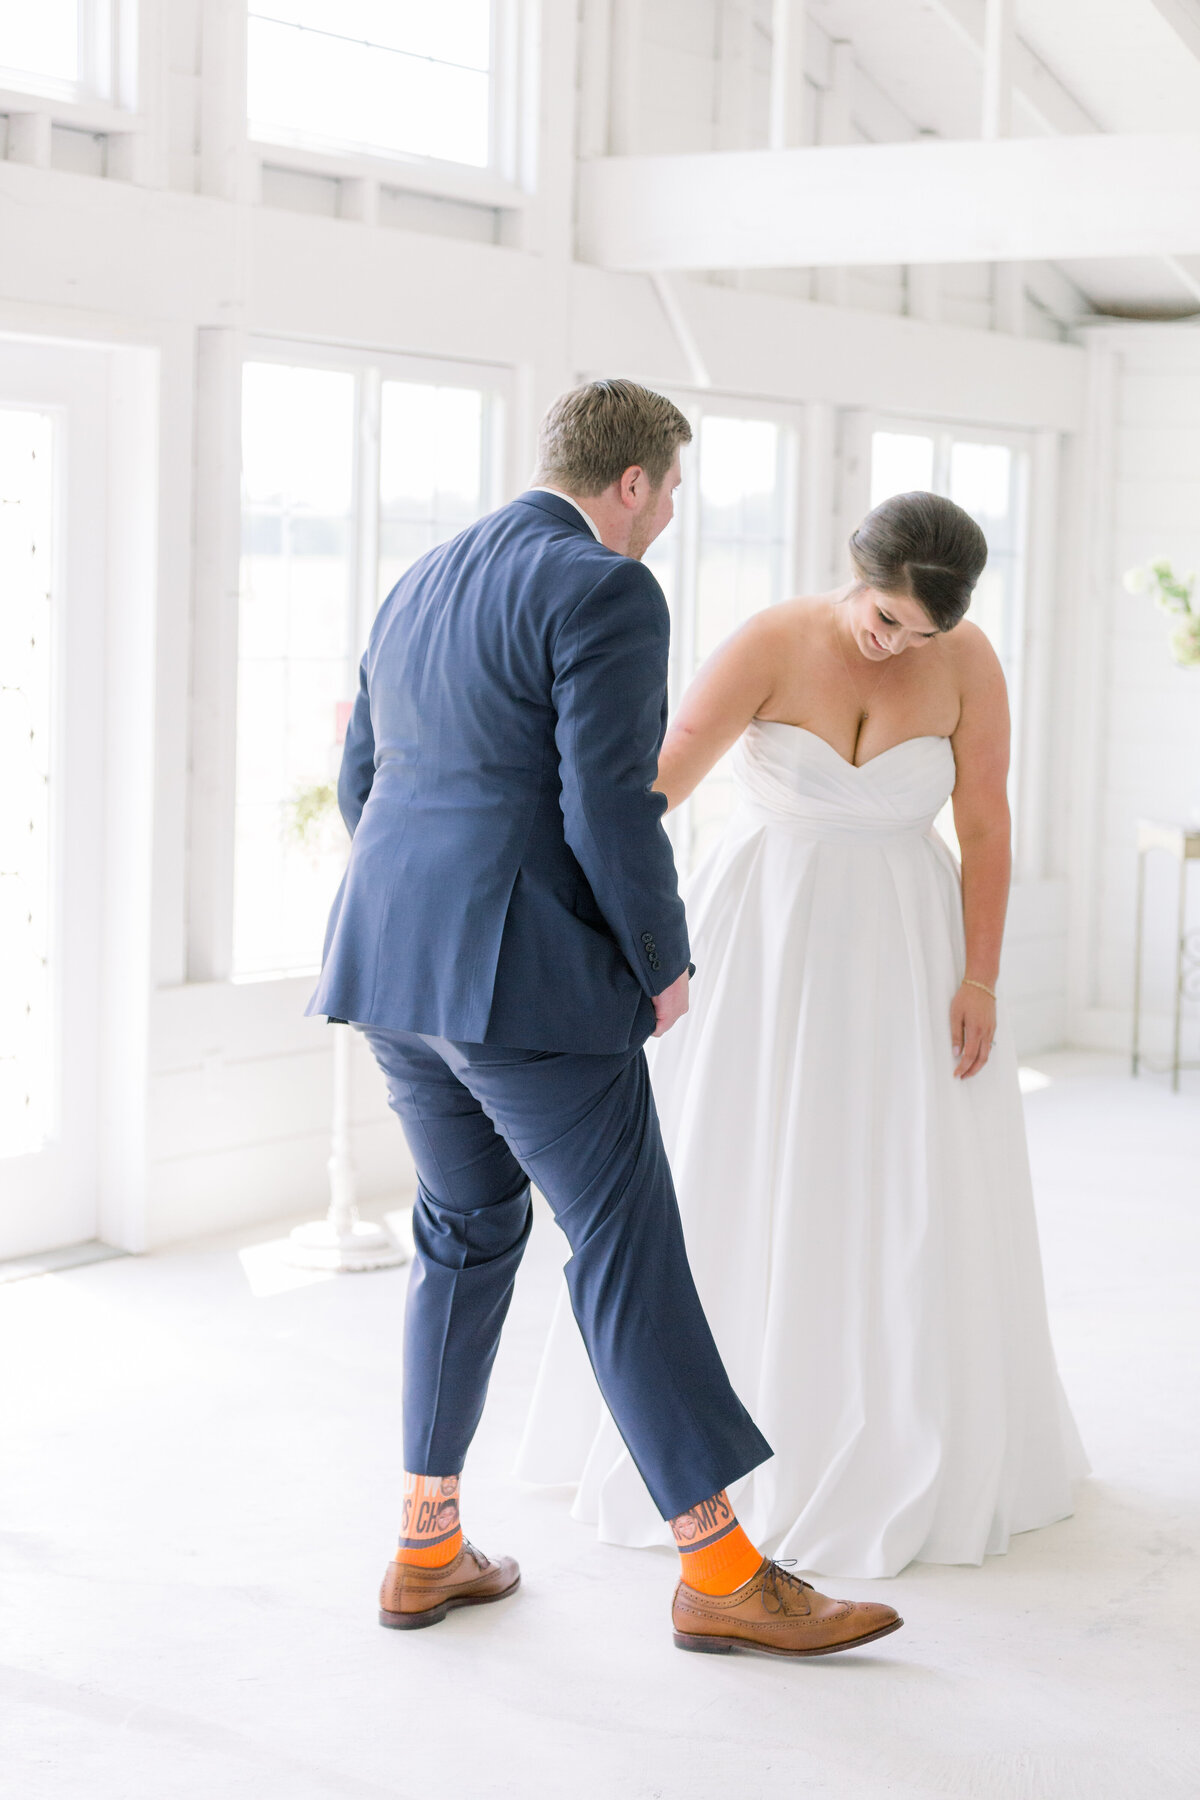 A bride and groom first look on wedding day. The groom is showing the bride his shoes and socks he bought for wedding day